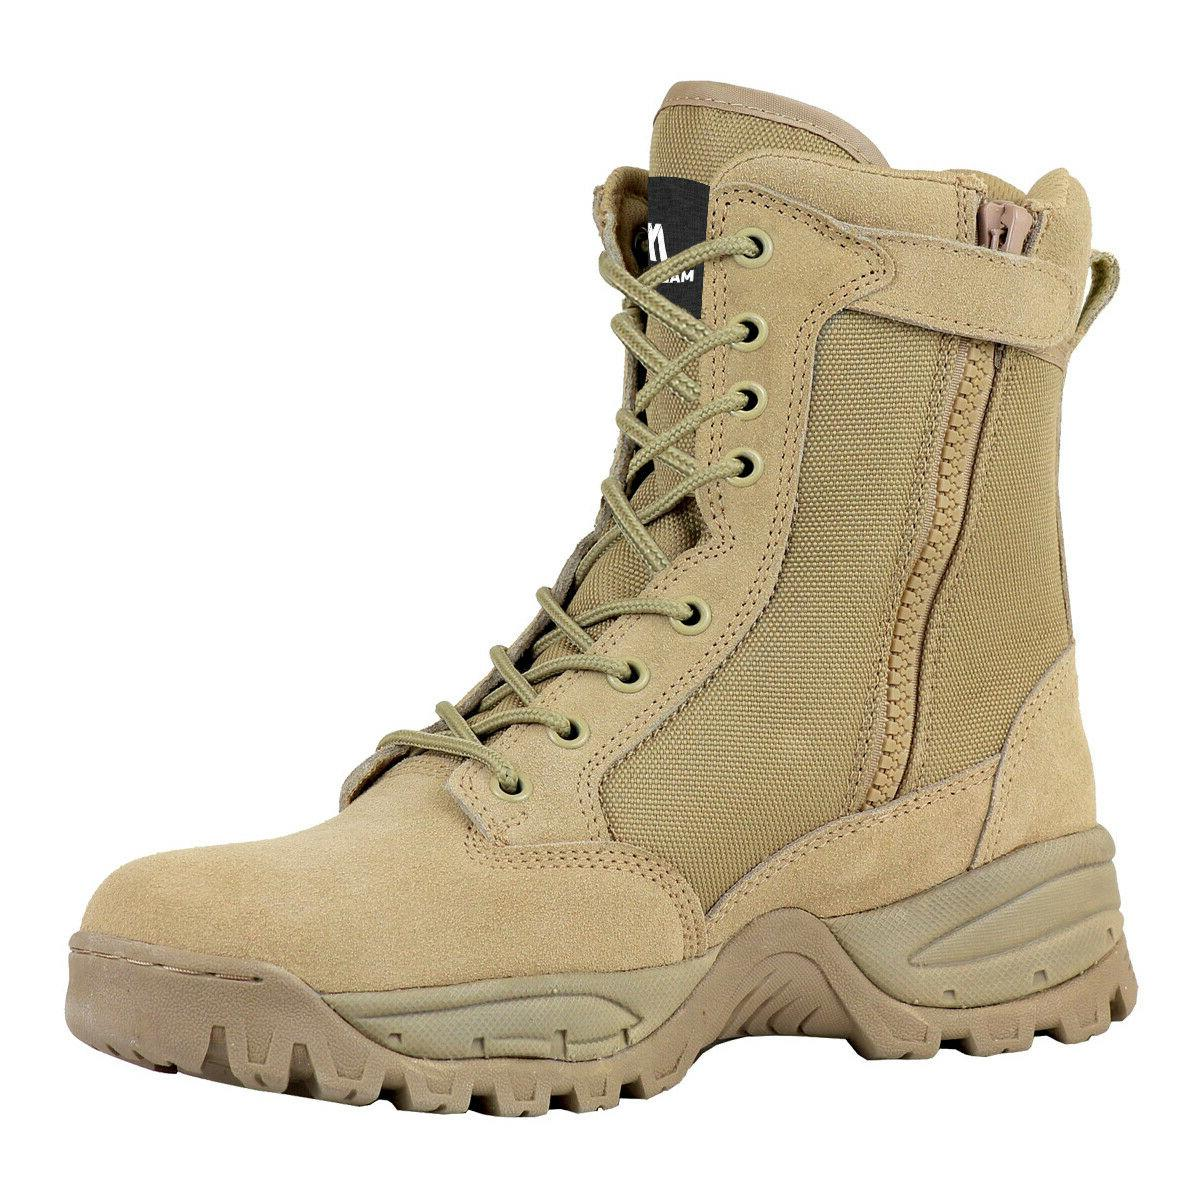 FINAL 8'' Desert Tan Military Tactical Work Boots with Zipper